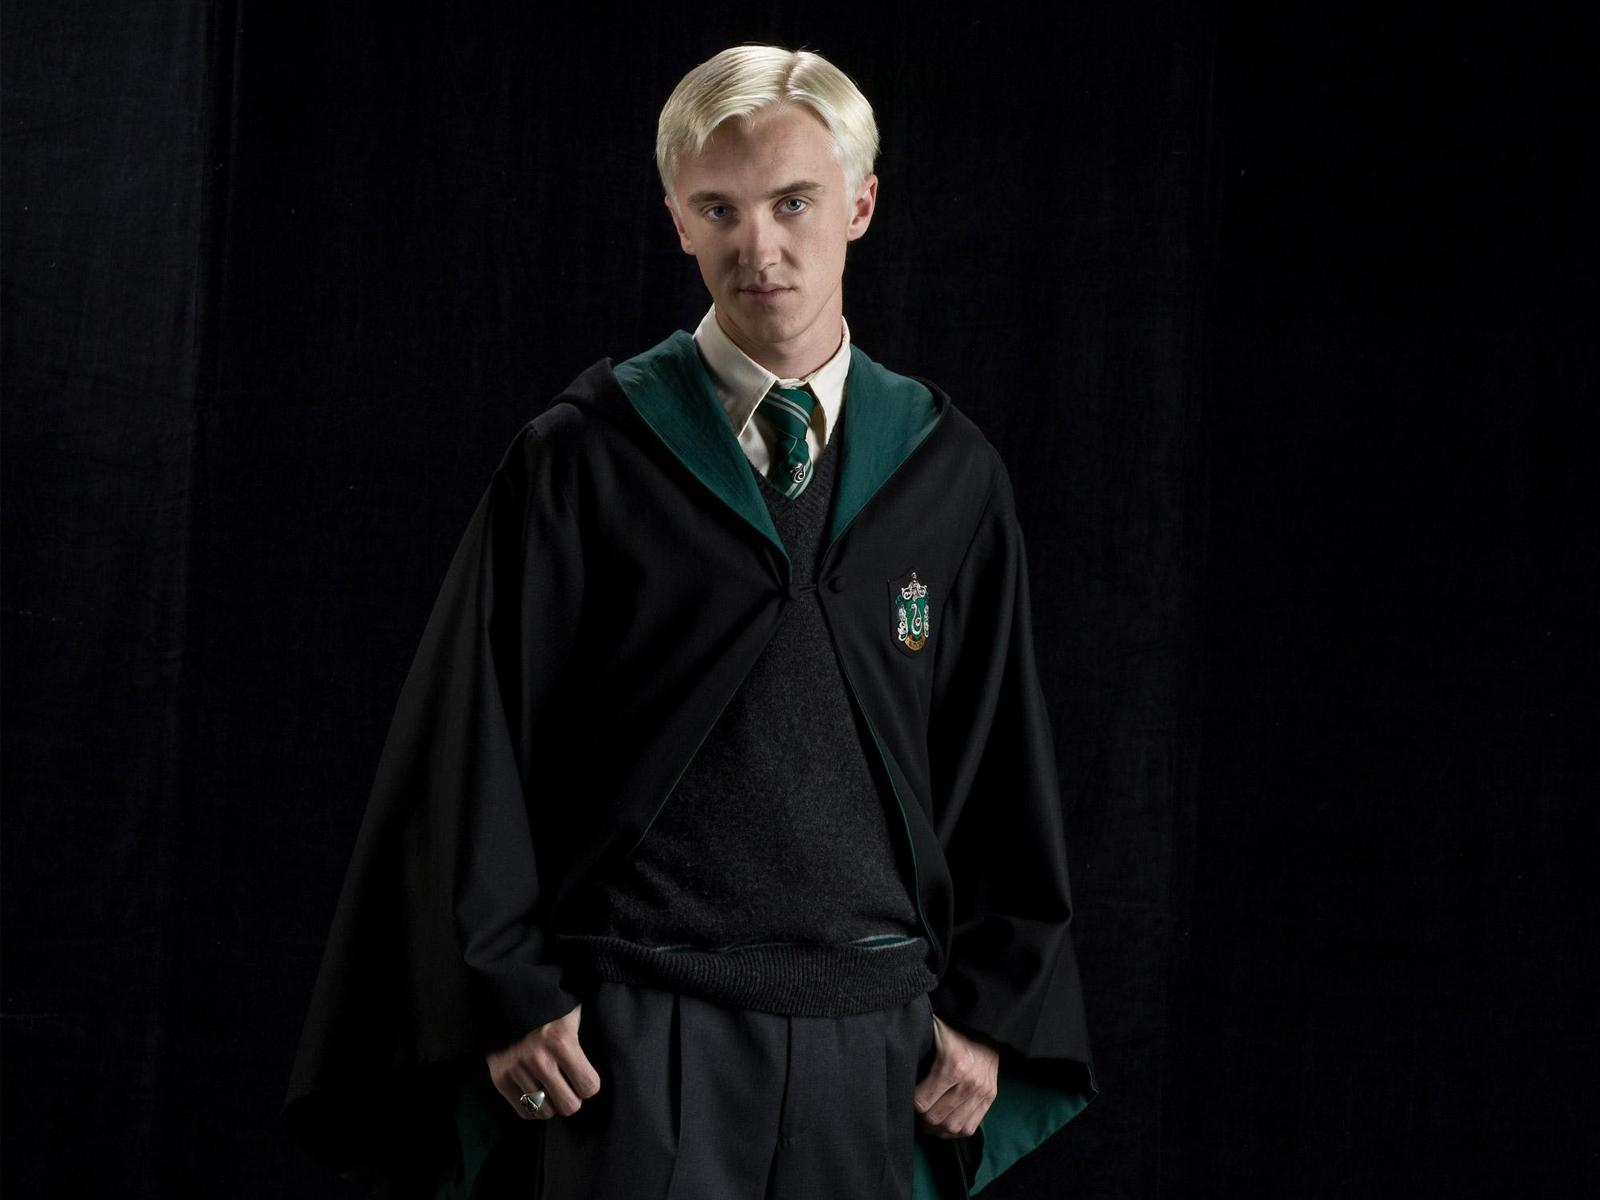 tom felton actor wallpaper 58132